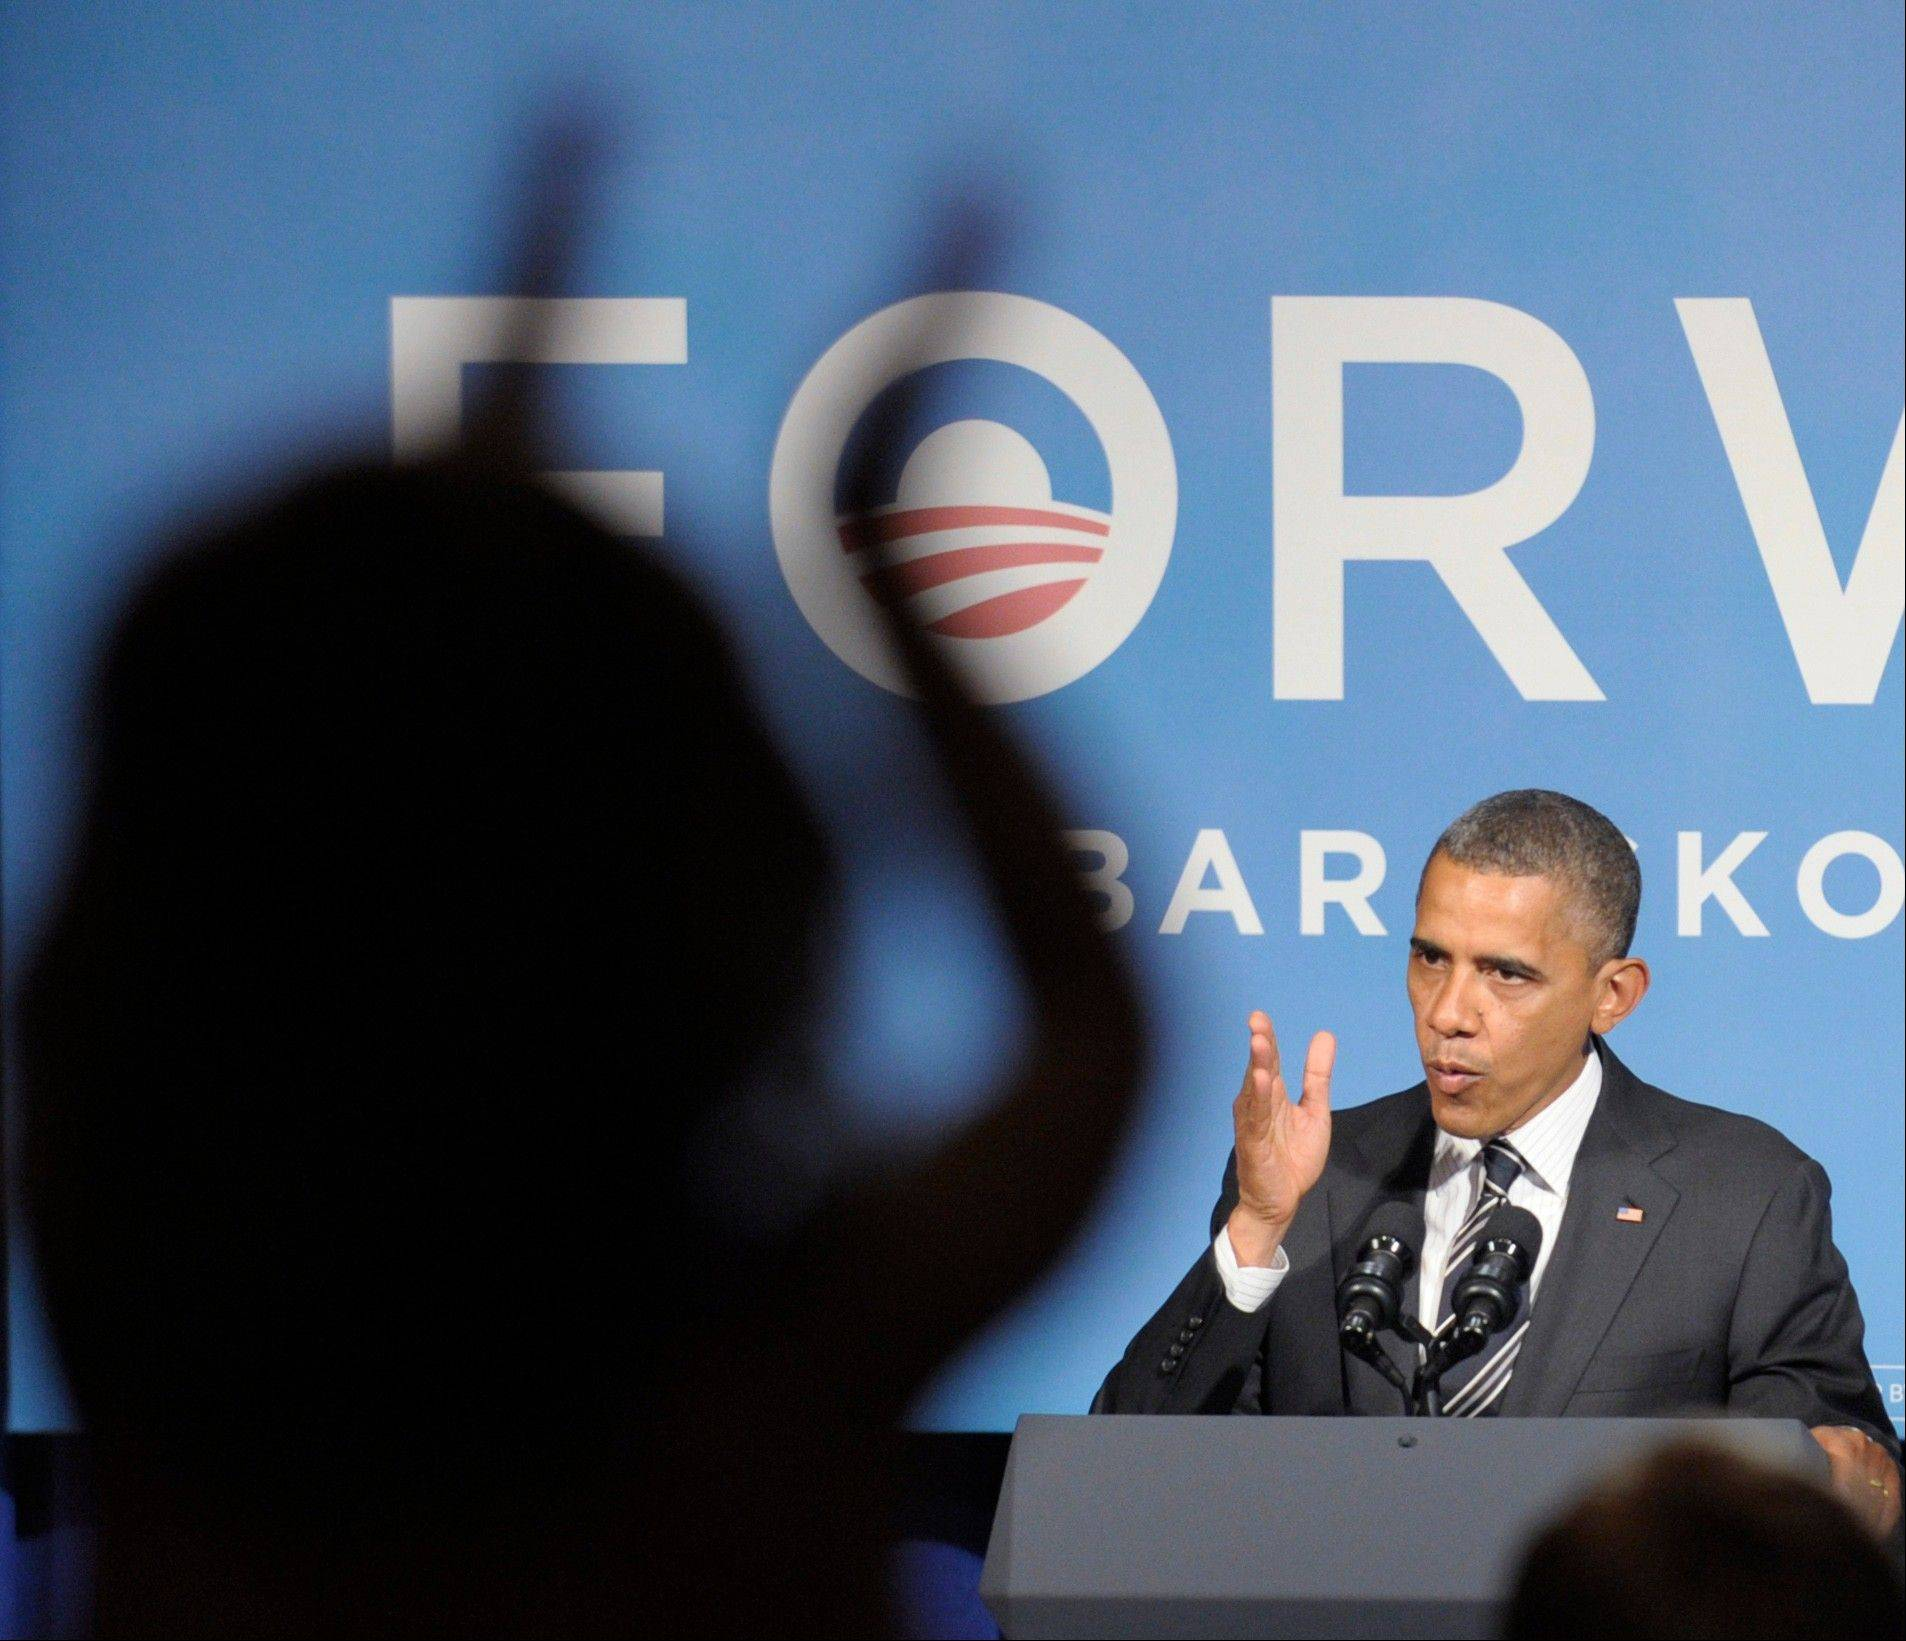 President Barack Obama speaks Friday at a campaign event in Washington.